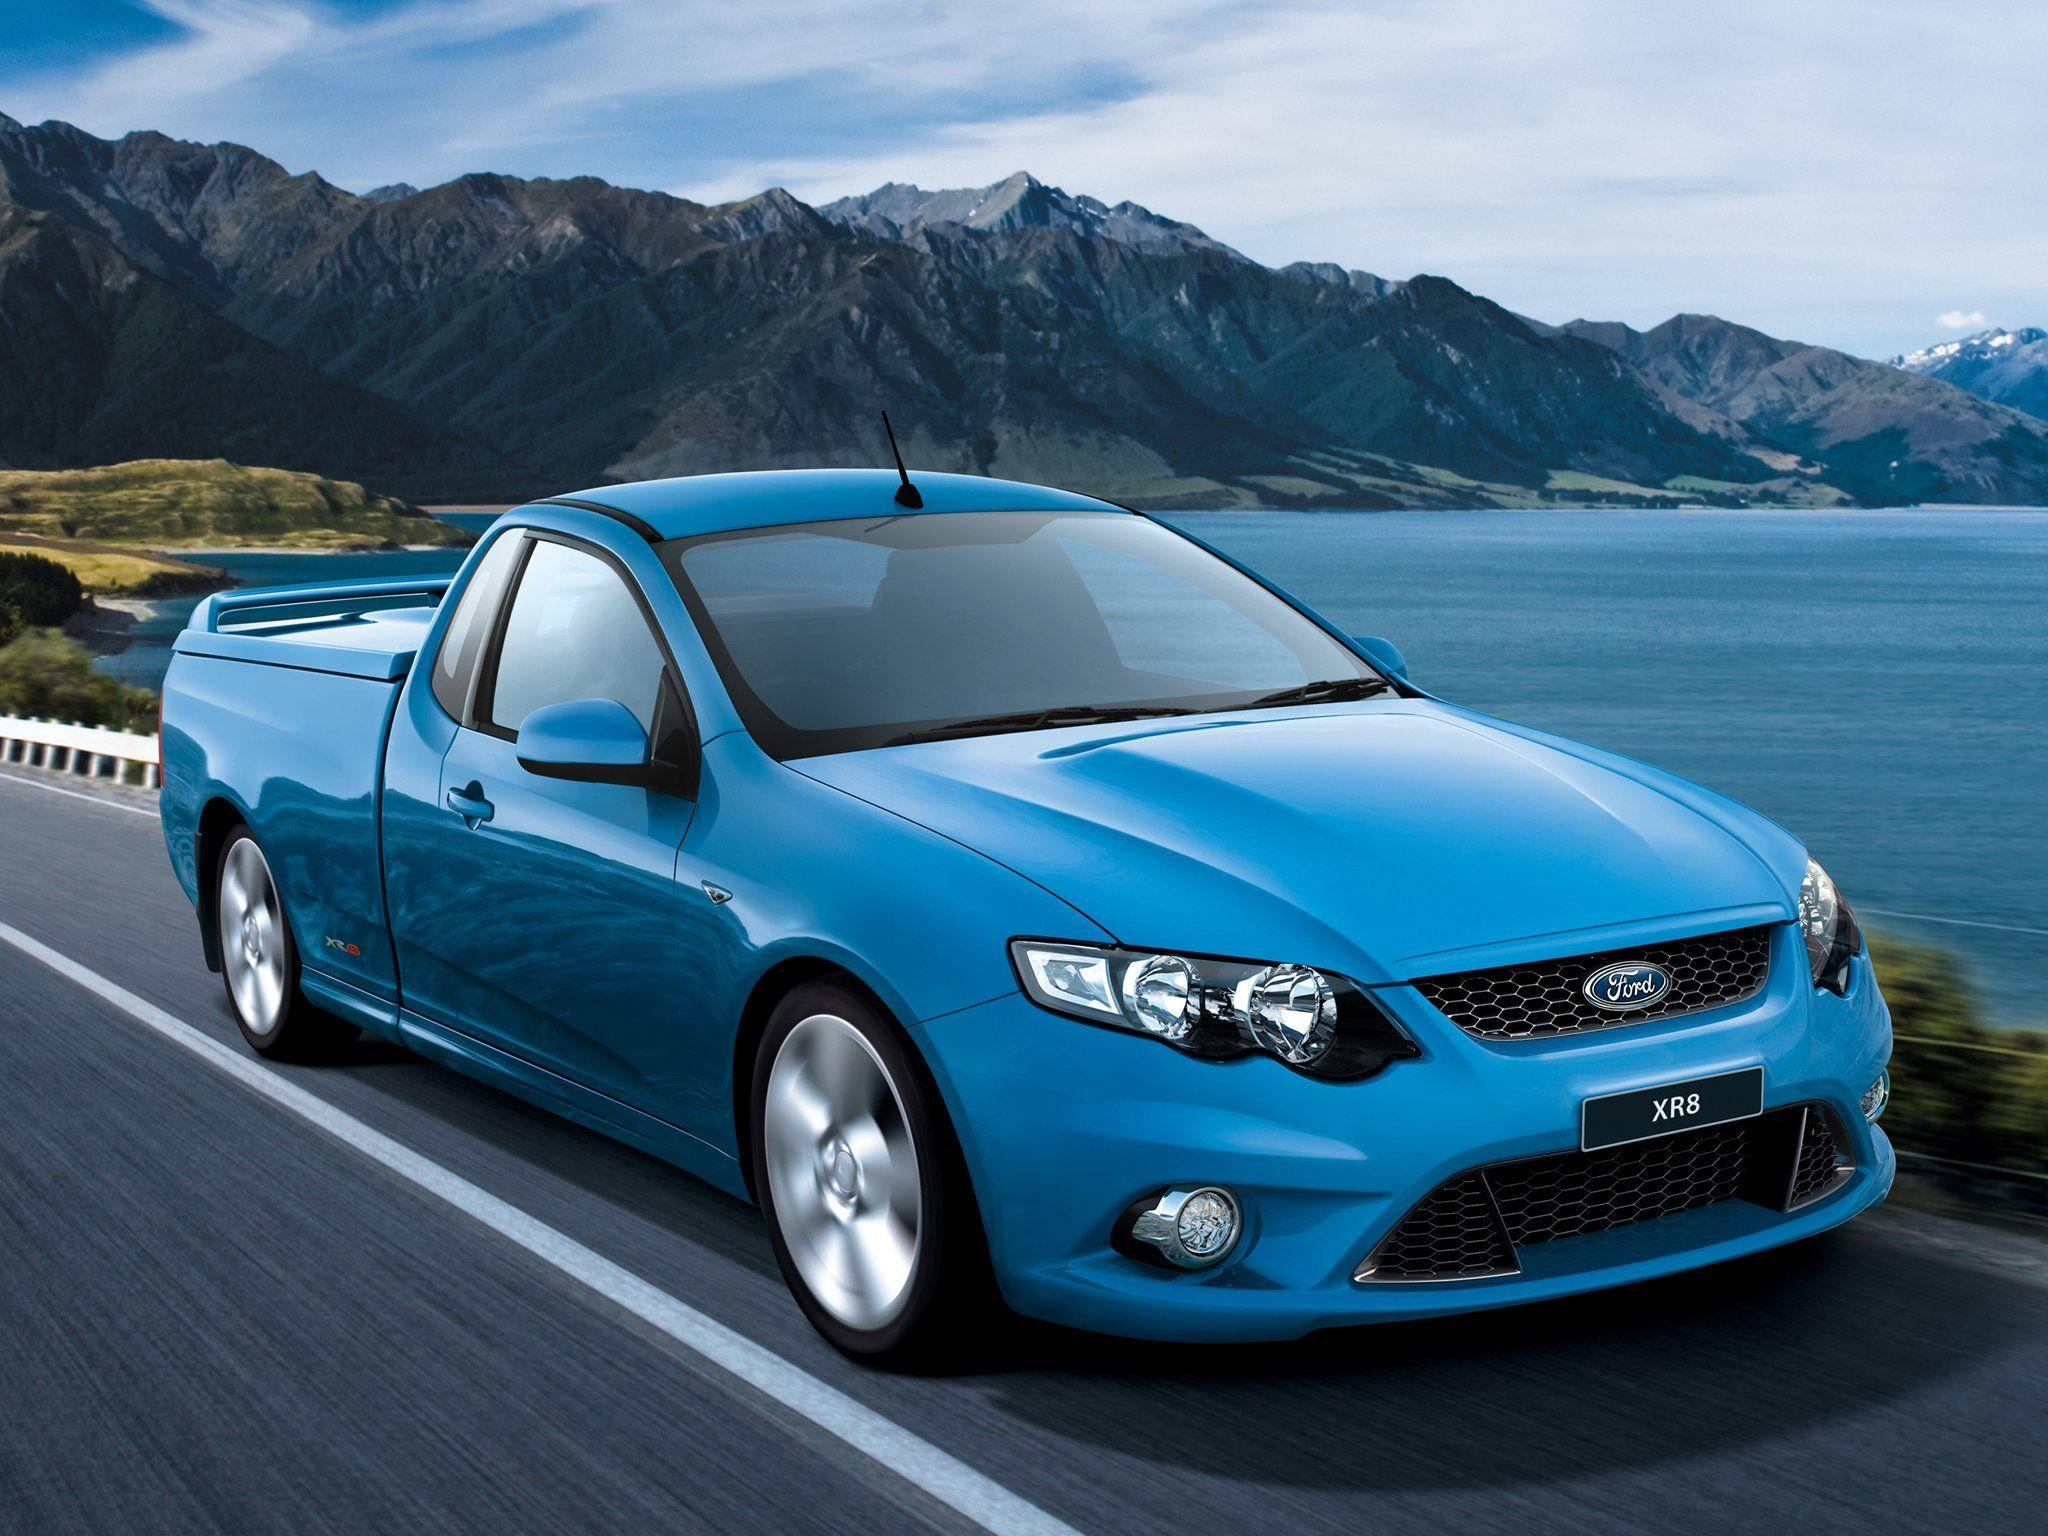 2008 Ford Falcon XR8 Ute